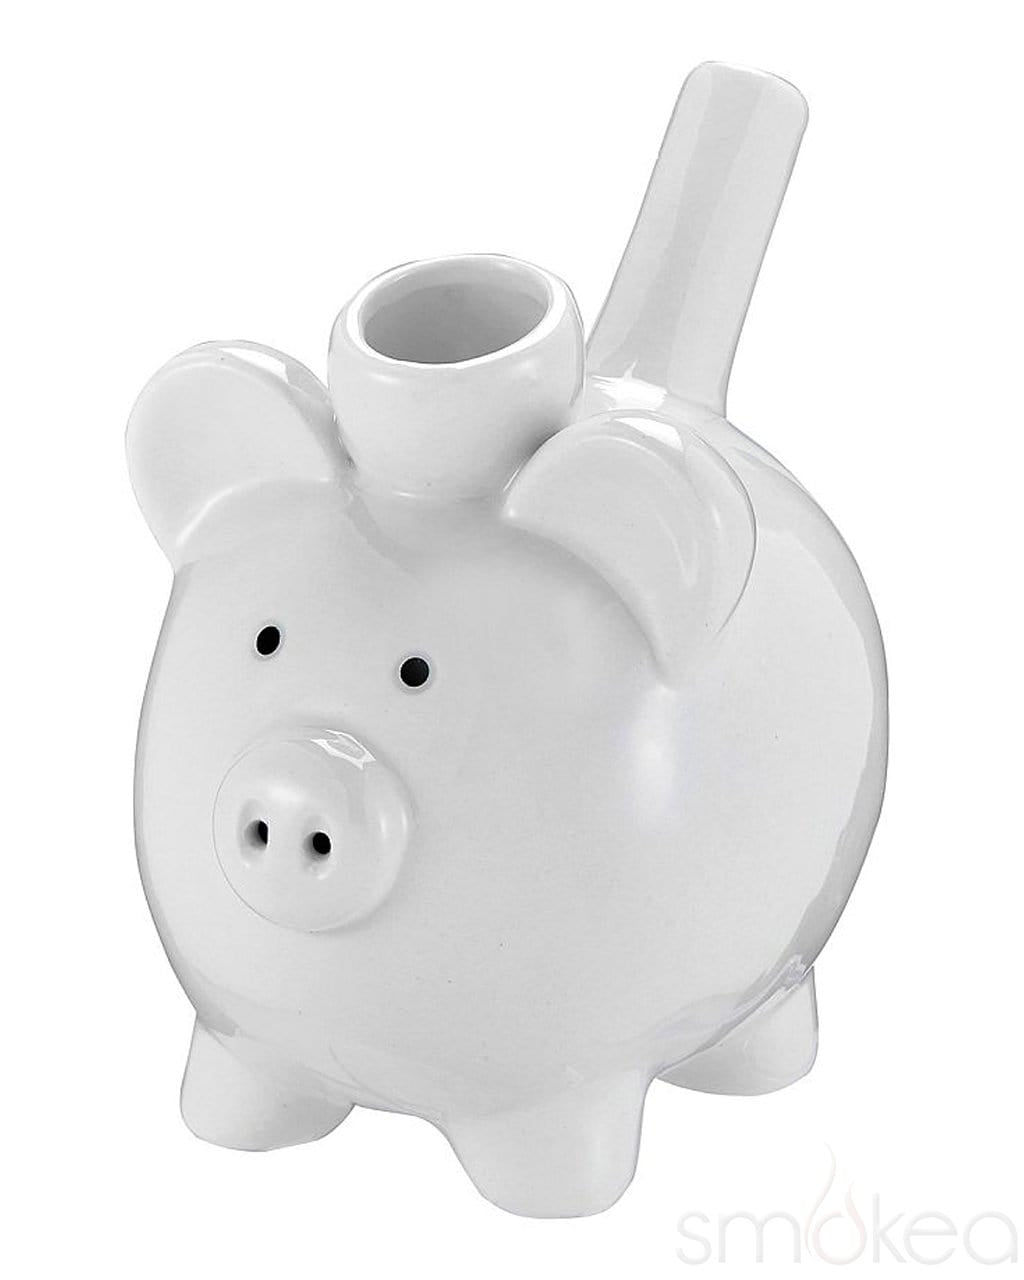 SMOKEA Ceramic Piggy Pipe - SMOKEA